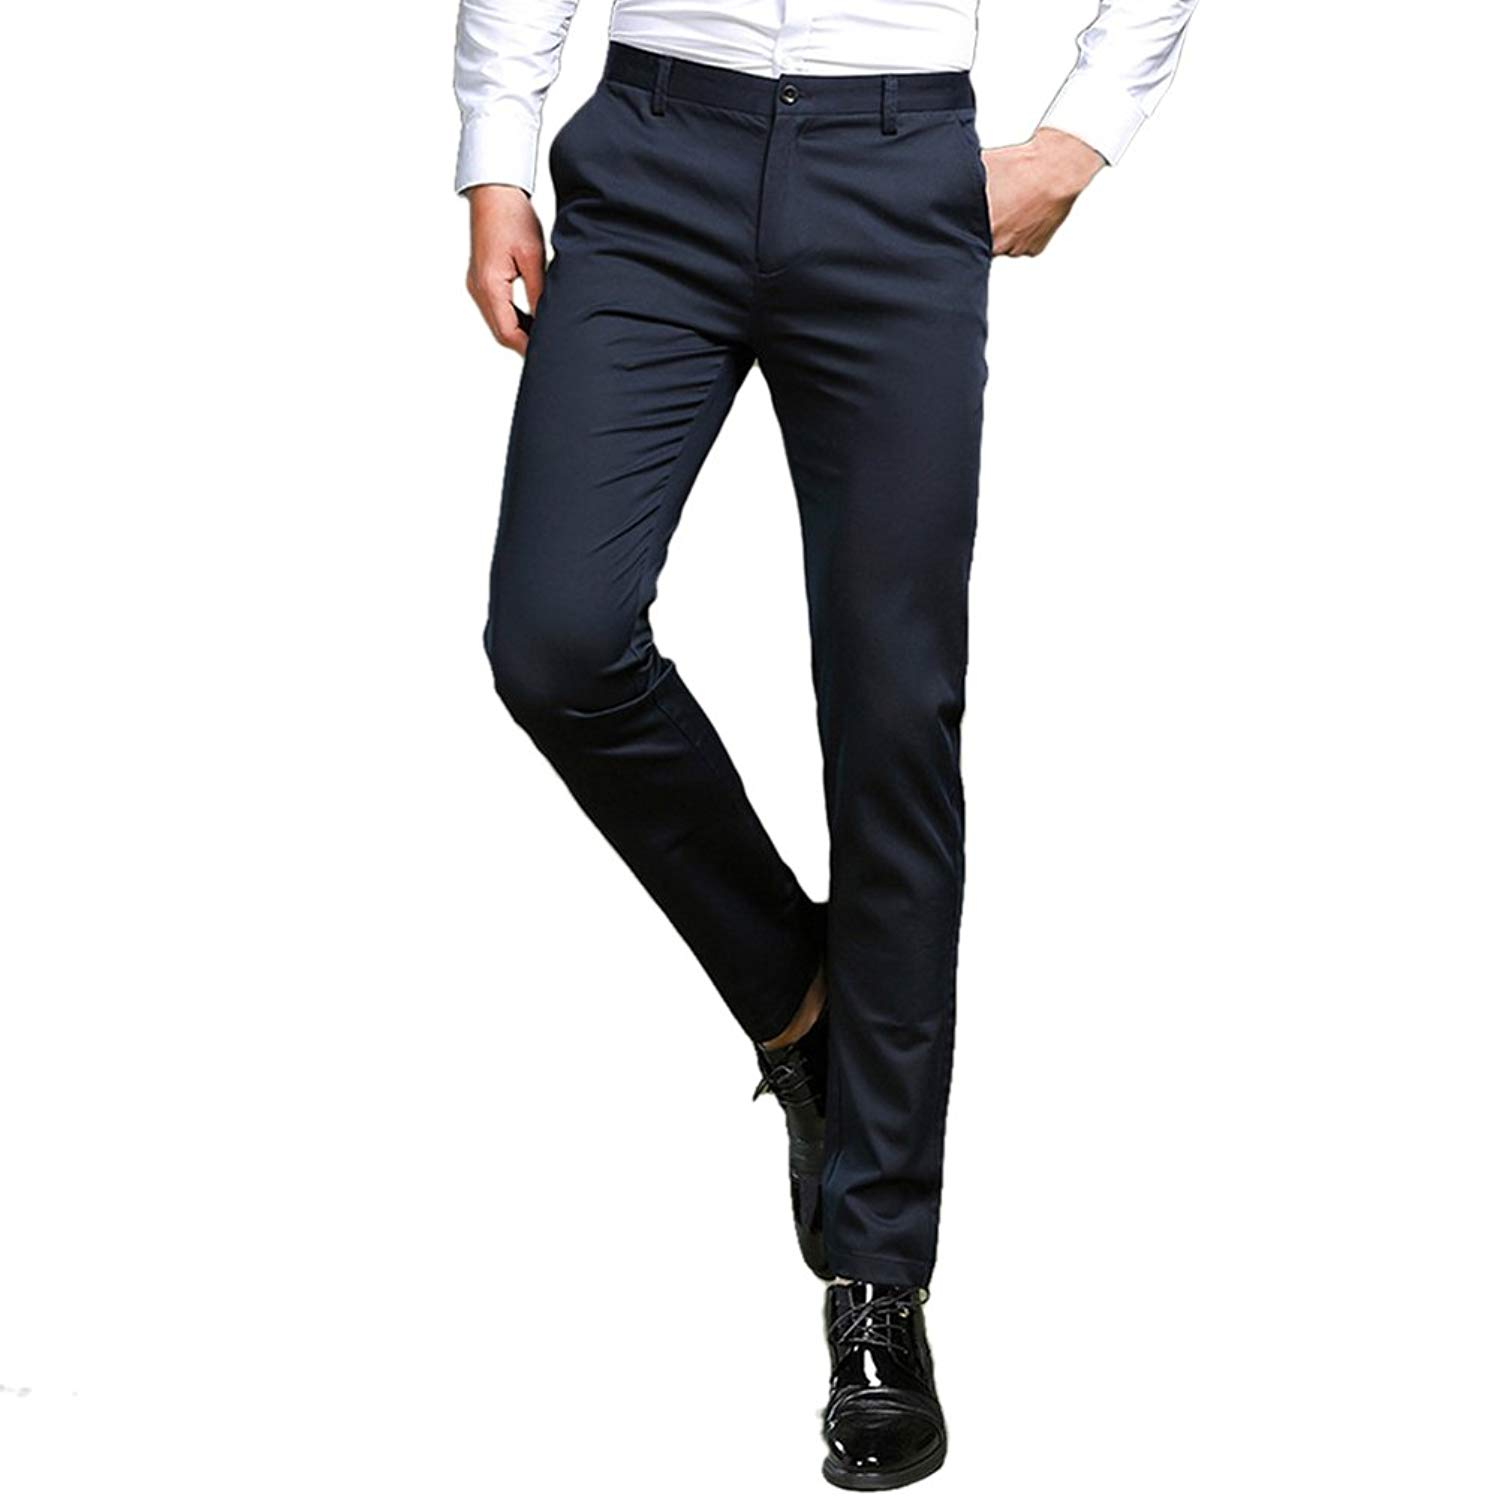 Cheap Best Office Trousers Find Best Office Trousers Deals On Line